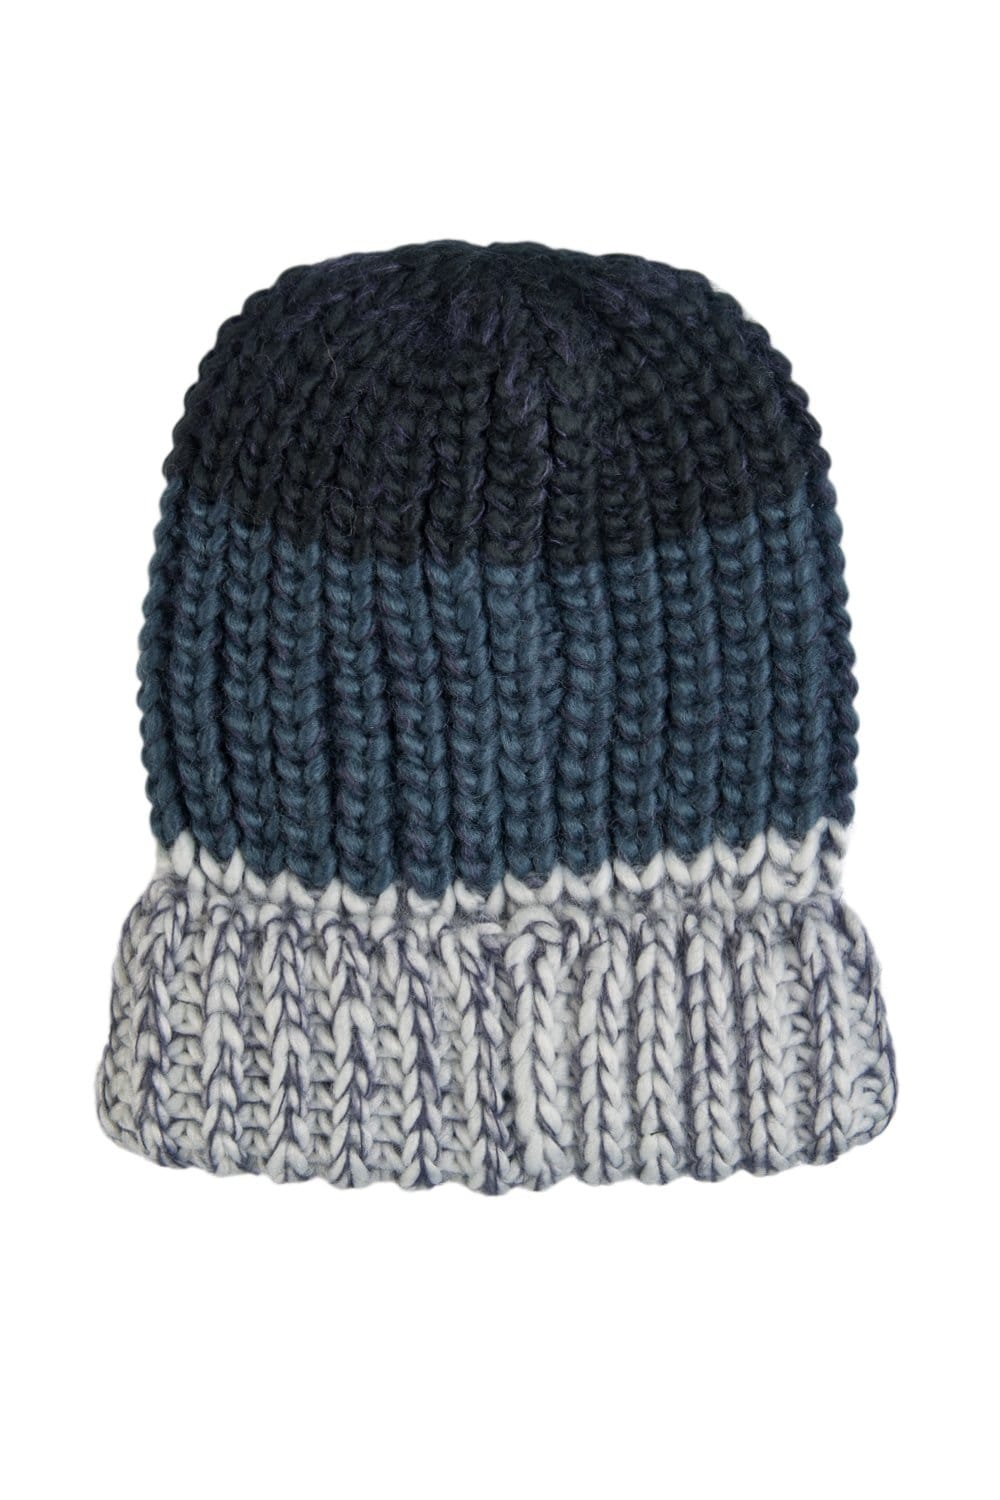 EA7 by Emporio Armani Beanie Hat in Navy Blue Grey and Brown 2755545A392 fa3fe1d3db9